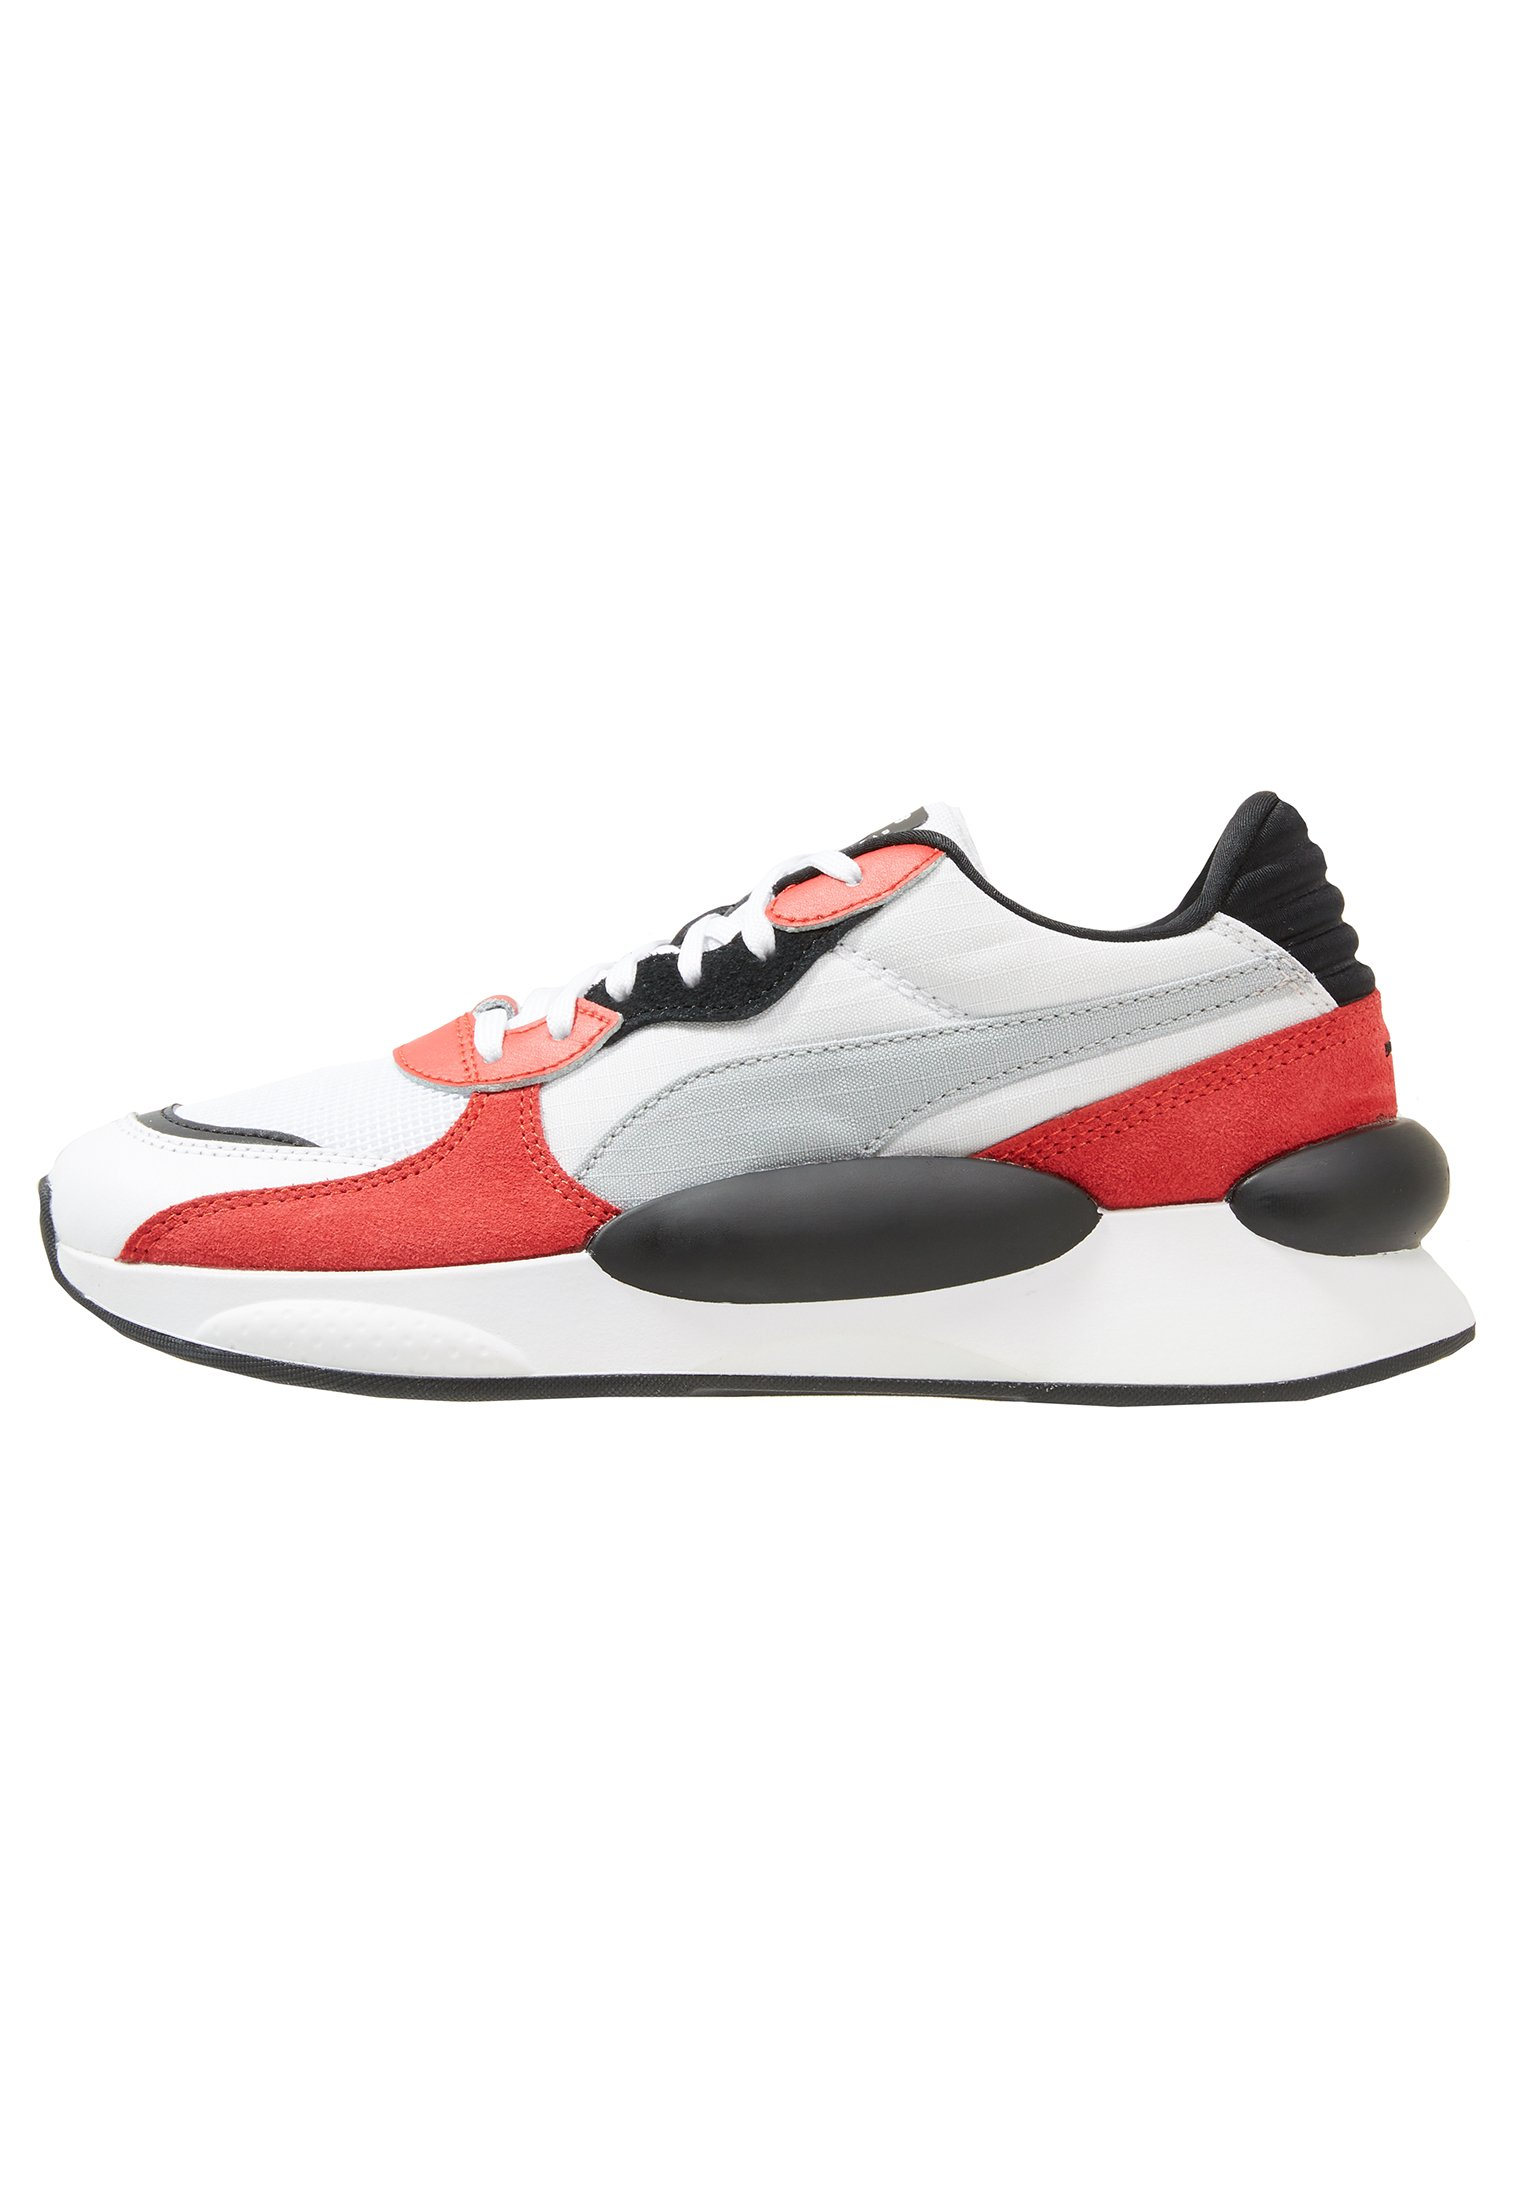 RS 9.8 SPACE Sneakers basse whitehigh risk red